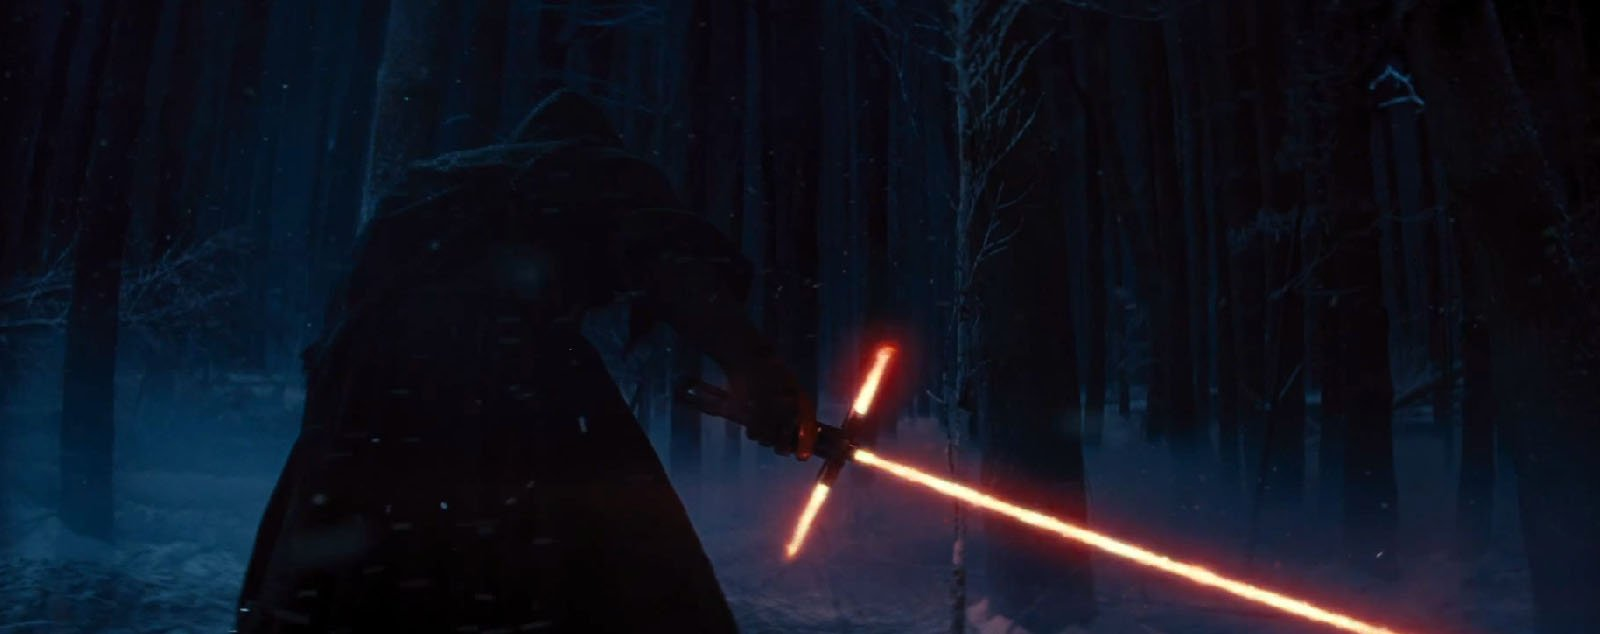 Star Wars: The Force Awakens (2016) Review 7